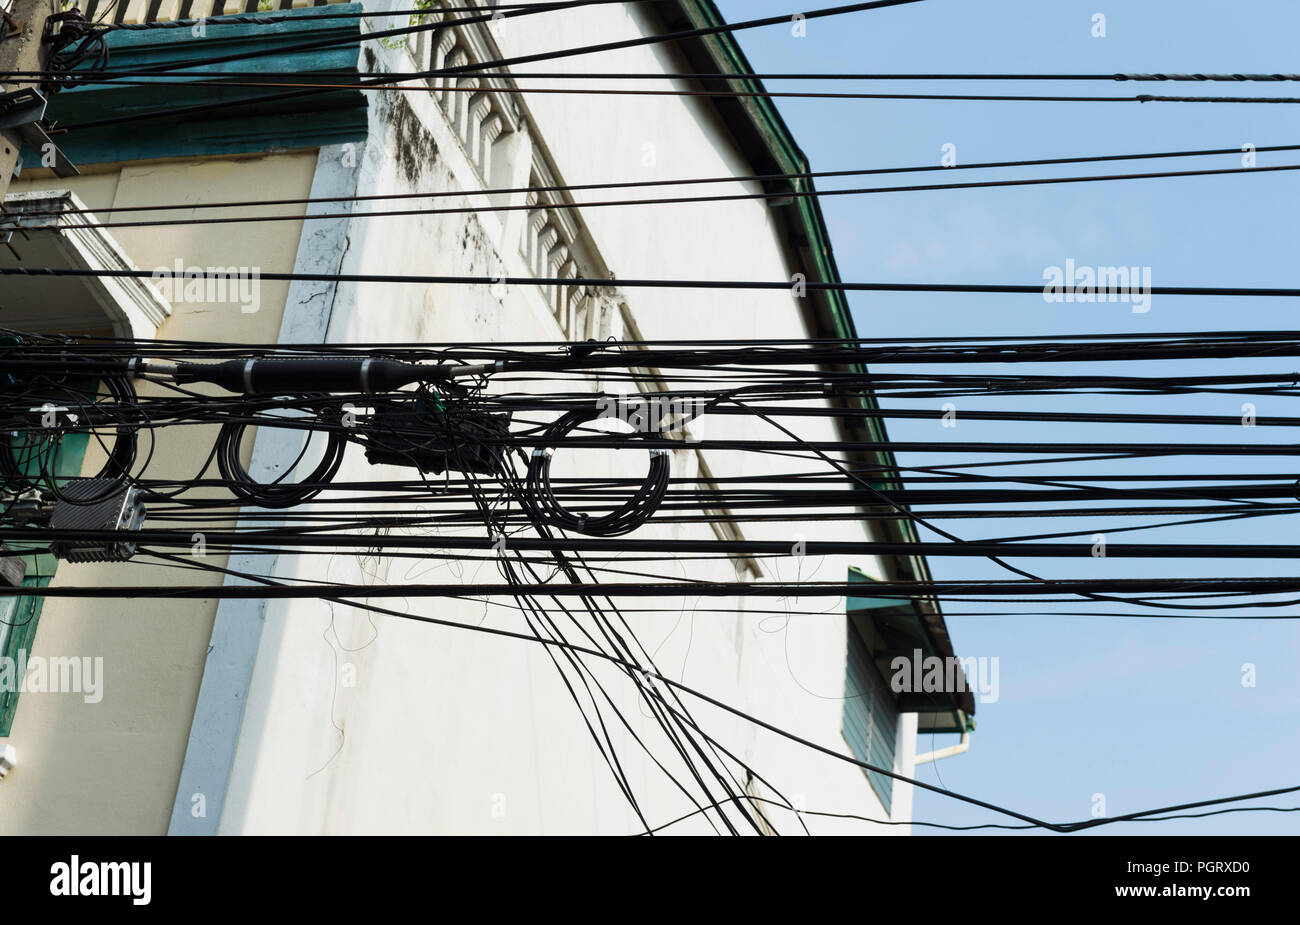 Electric cables in Bangkok Thailand - Stock Image